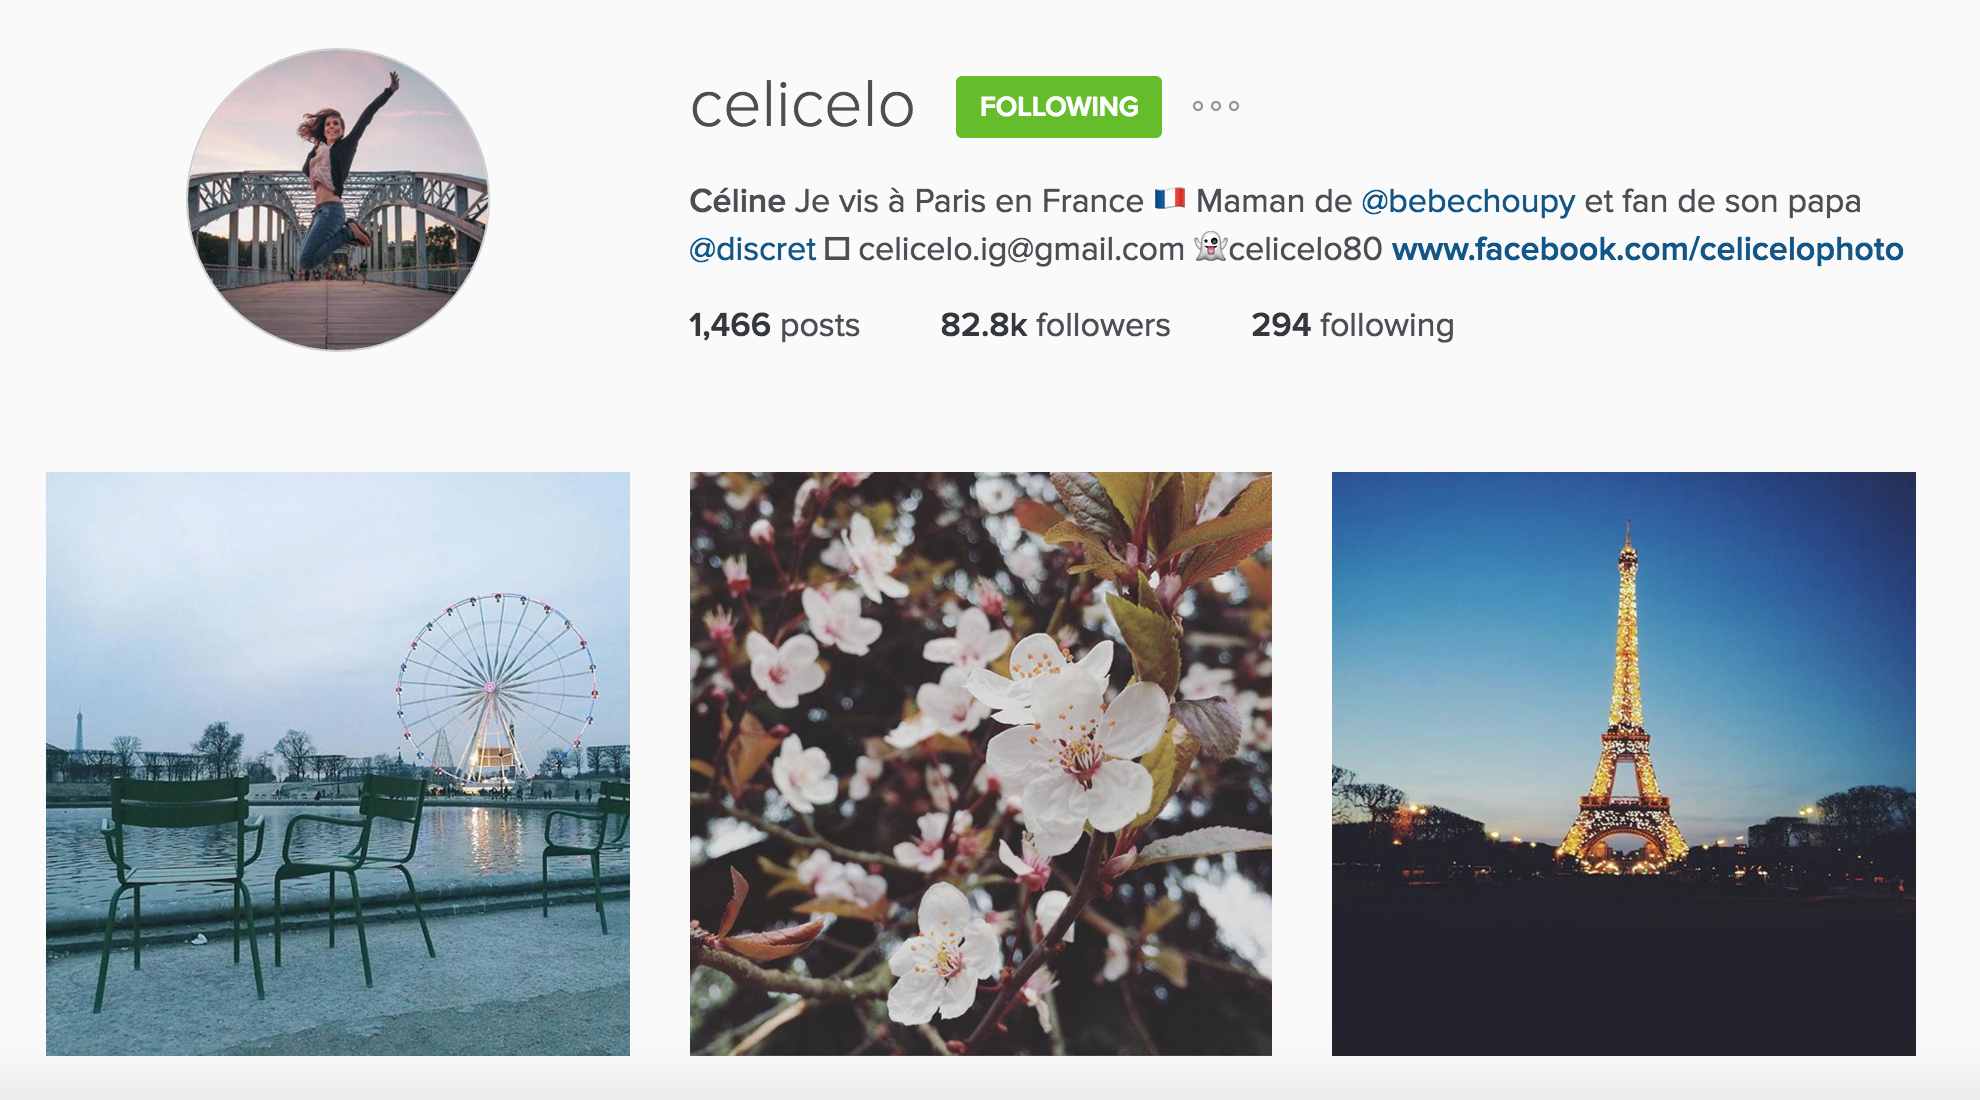 instagram cariboo paris account celicelo céline sunset